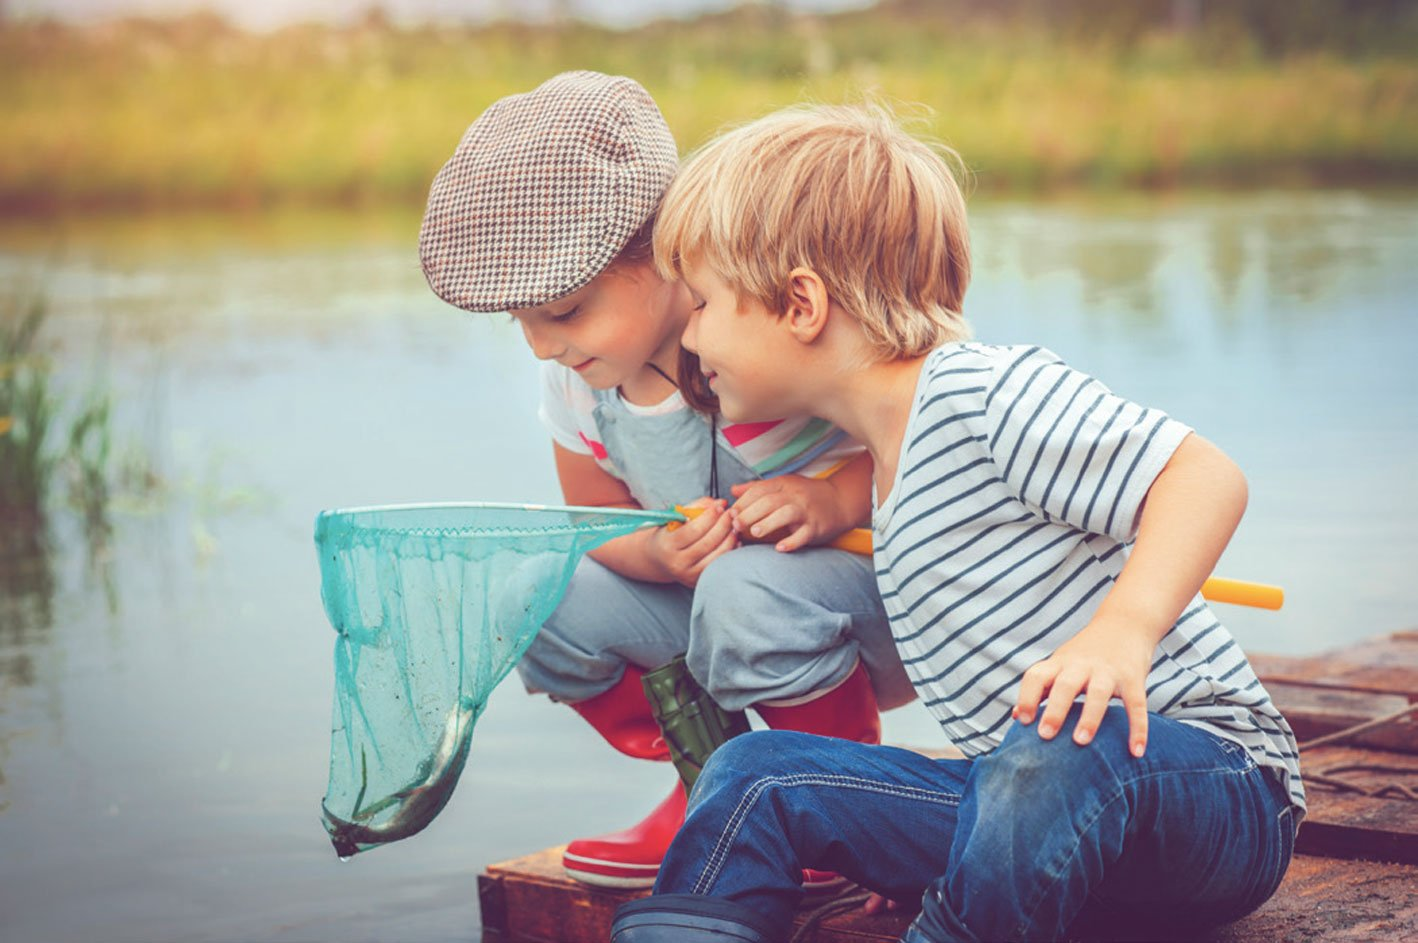 Two kids looking at a fish in a net.